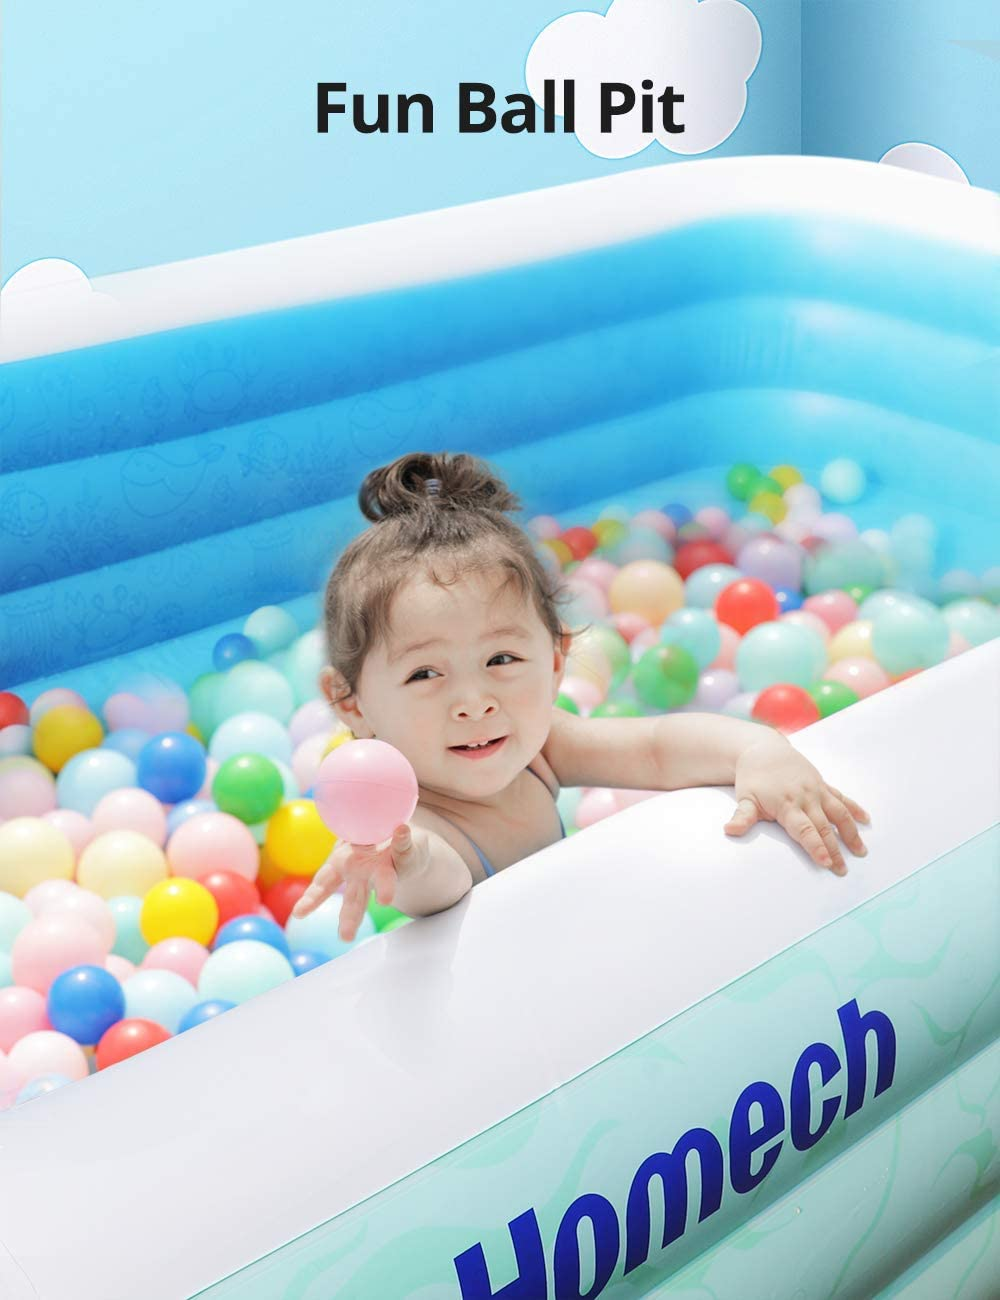 Garden Homech Inflatable Swimming Pool with Sun Shade UV30+ Sun Shelter Rectangular Lounge Pool for Backyard Inflatable Pool Adults Kids Family Swim Center 118x72x22 Blow Up Pool for Age 3+